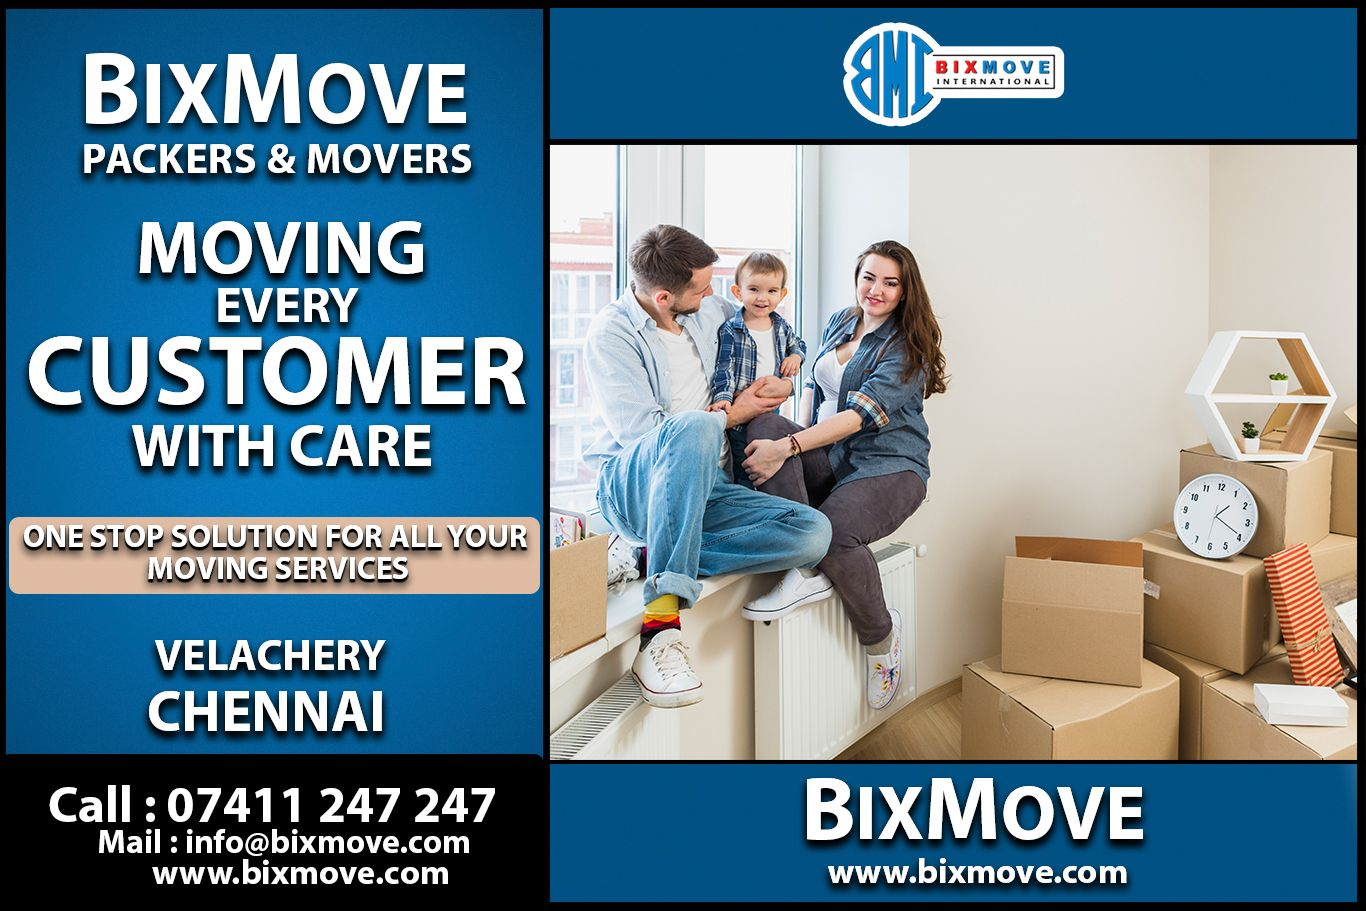 Best Packers and Movers Services in Velachery Cehnnai